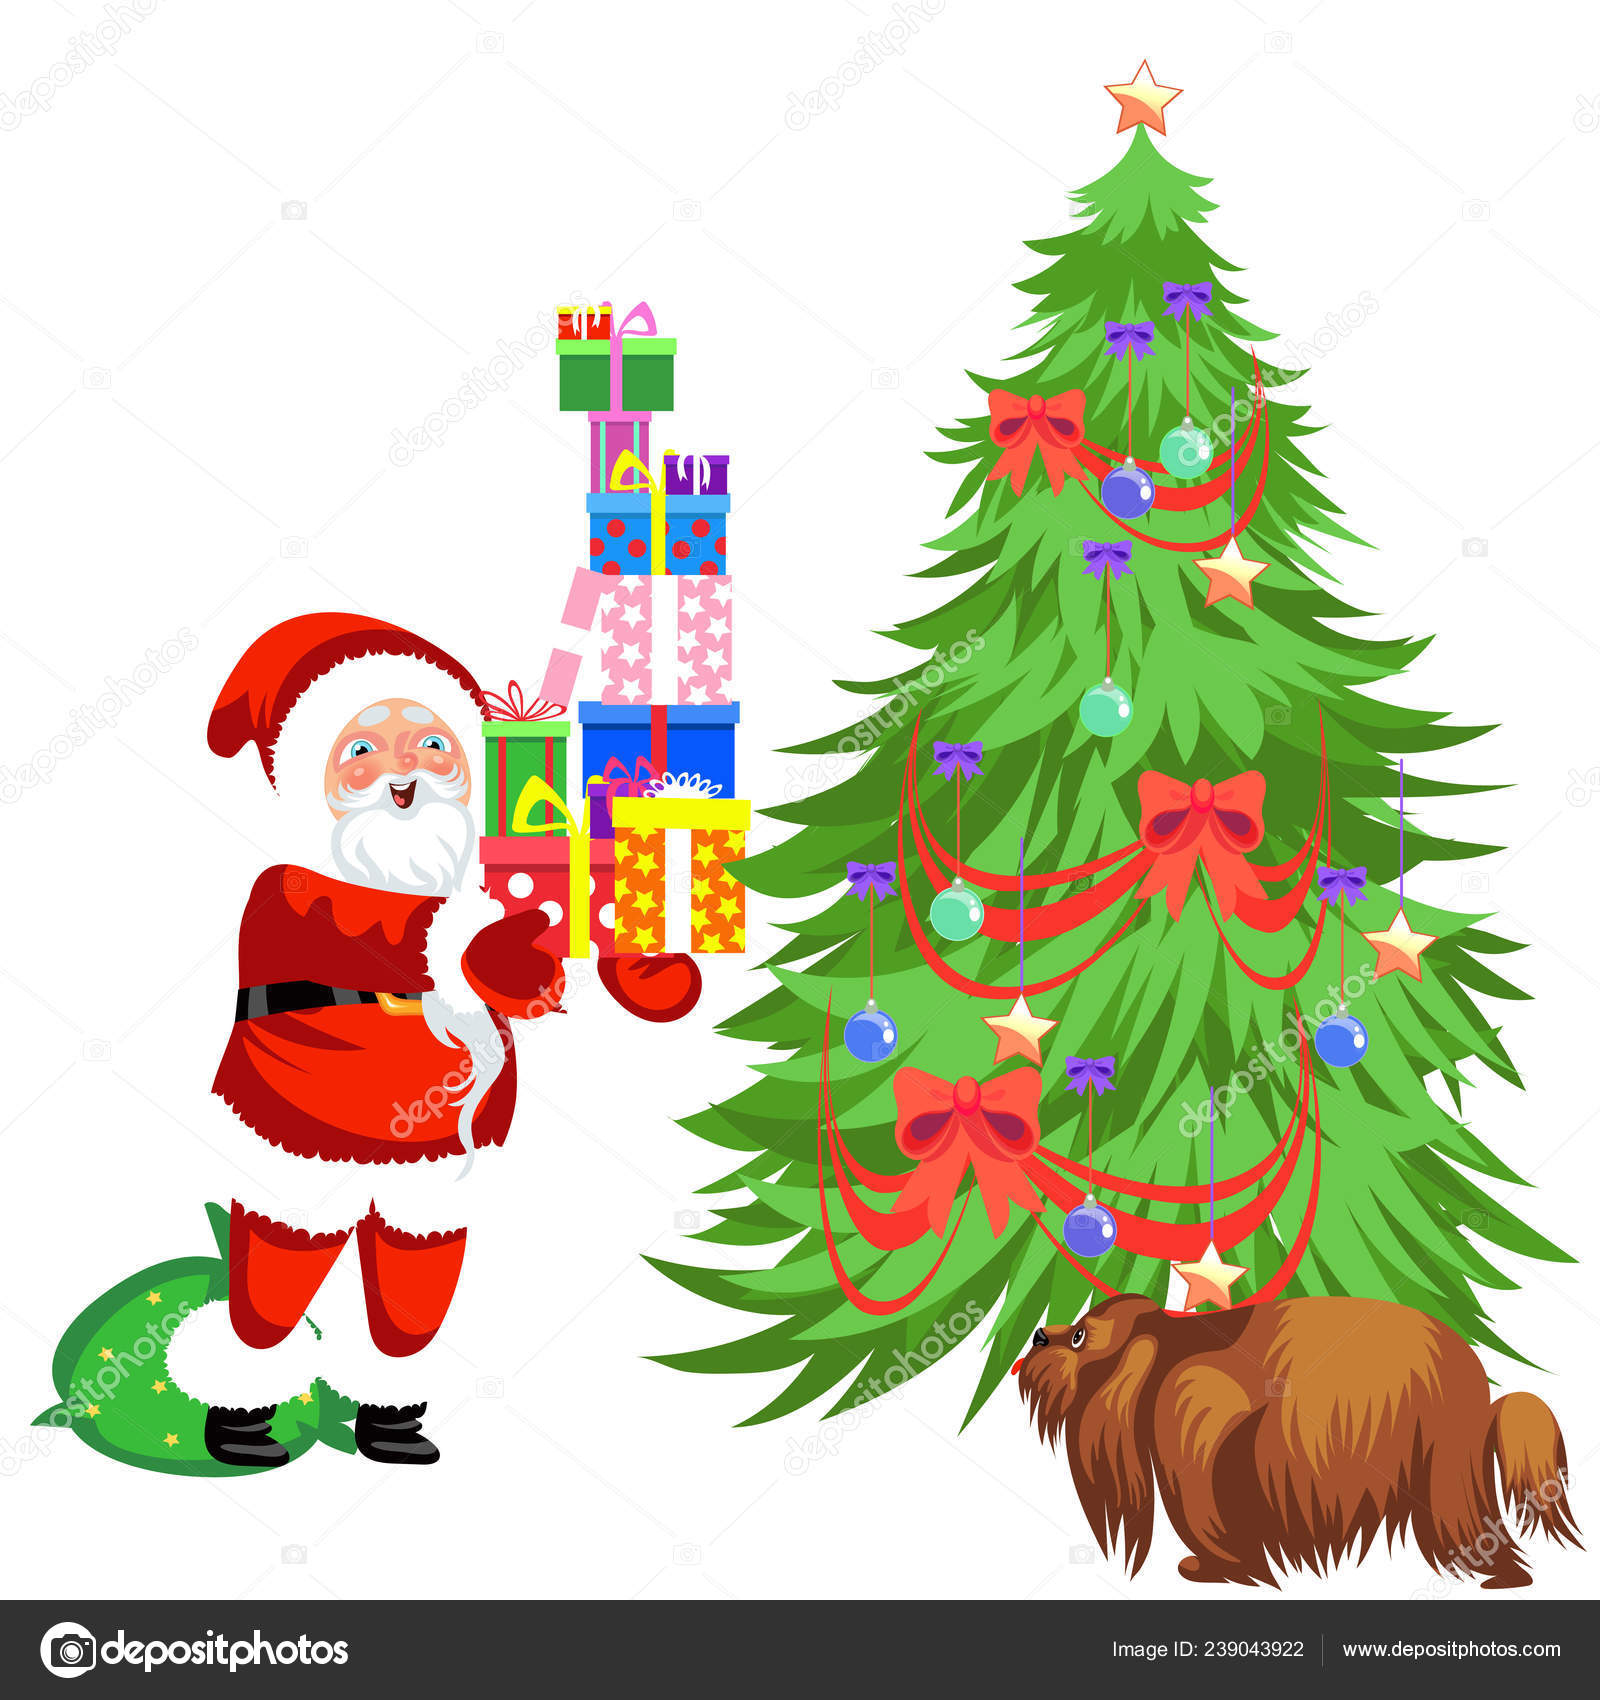 Cartoon Santa Claus Putting Presents Under Christmas Tree Stock Vector C Anutaberg 239043922 I'd be surrpised if it could yield one pound of fruit tree cartoon 19 of 26. cartoon santa claus putting presents under christmas tree stock vector c anutaberg 239043922